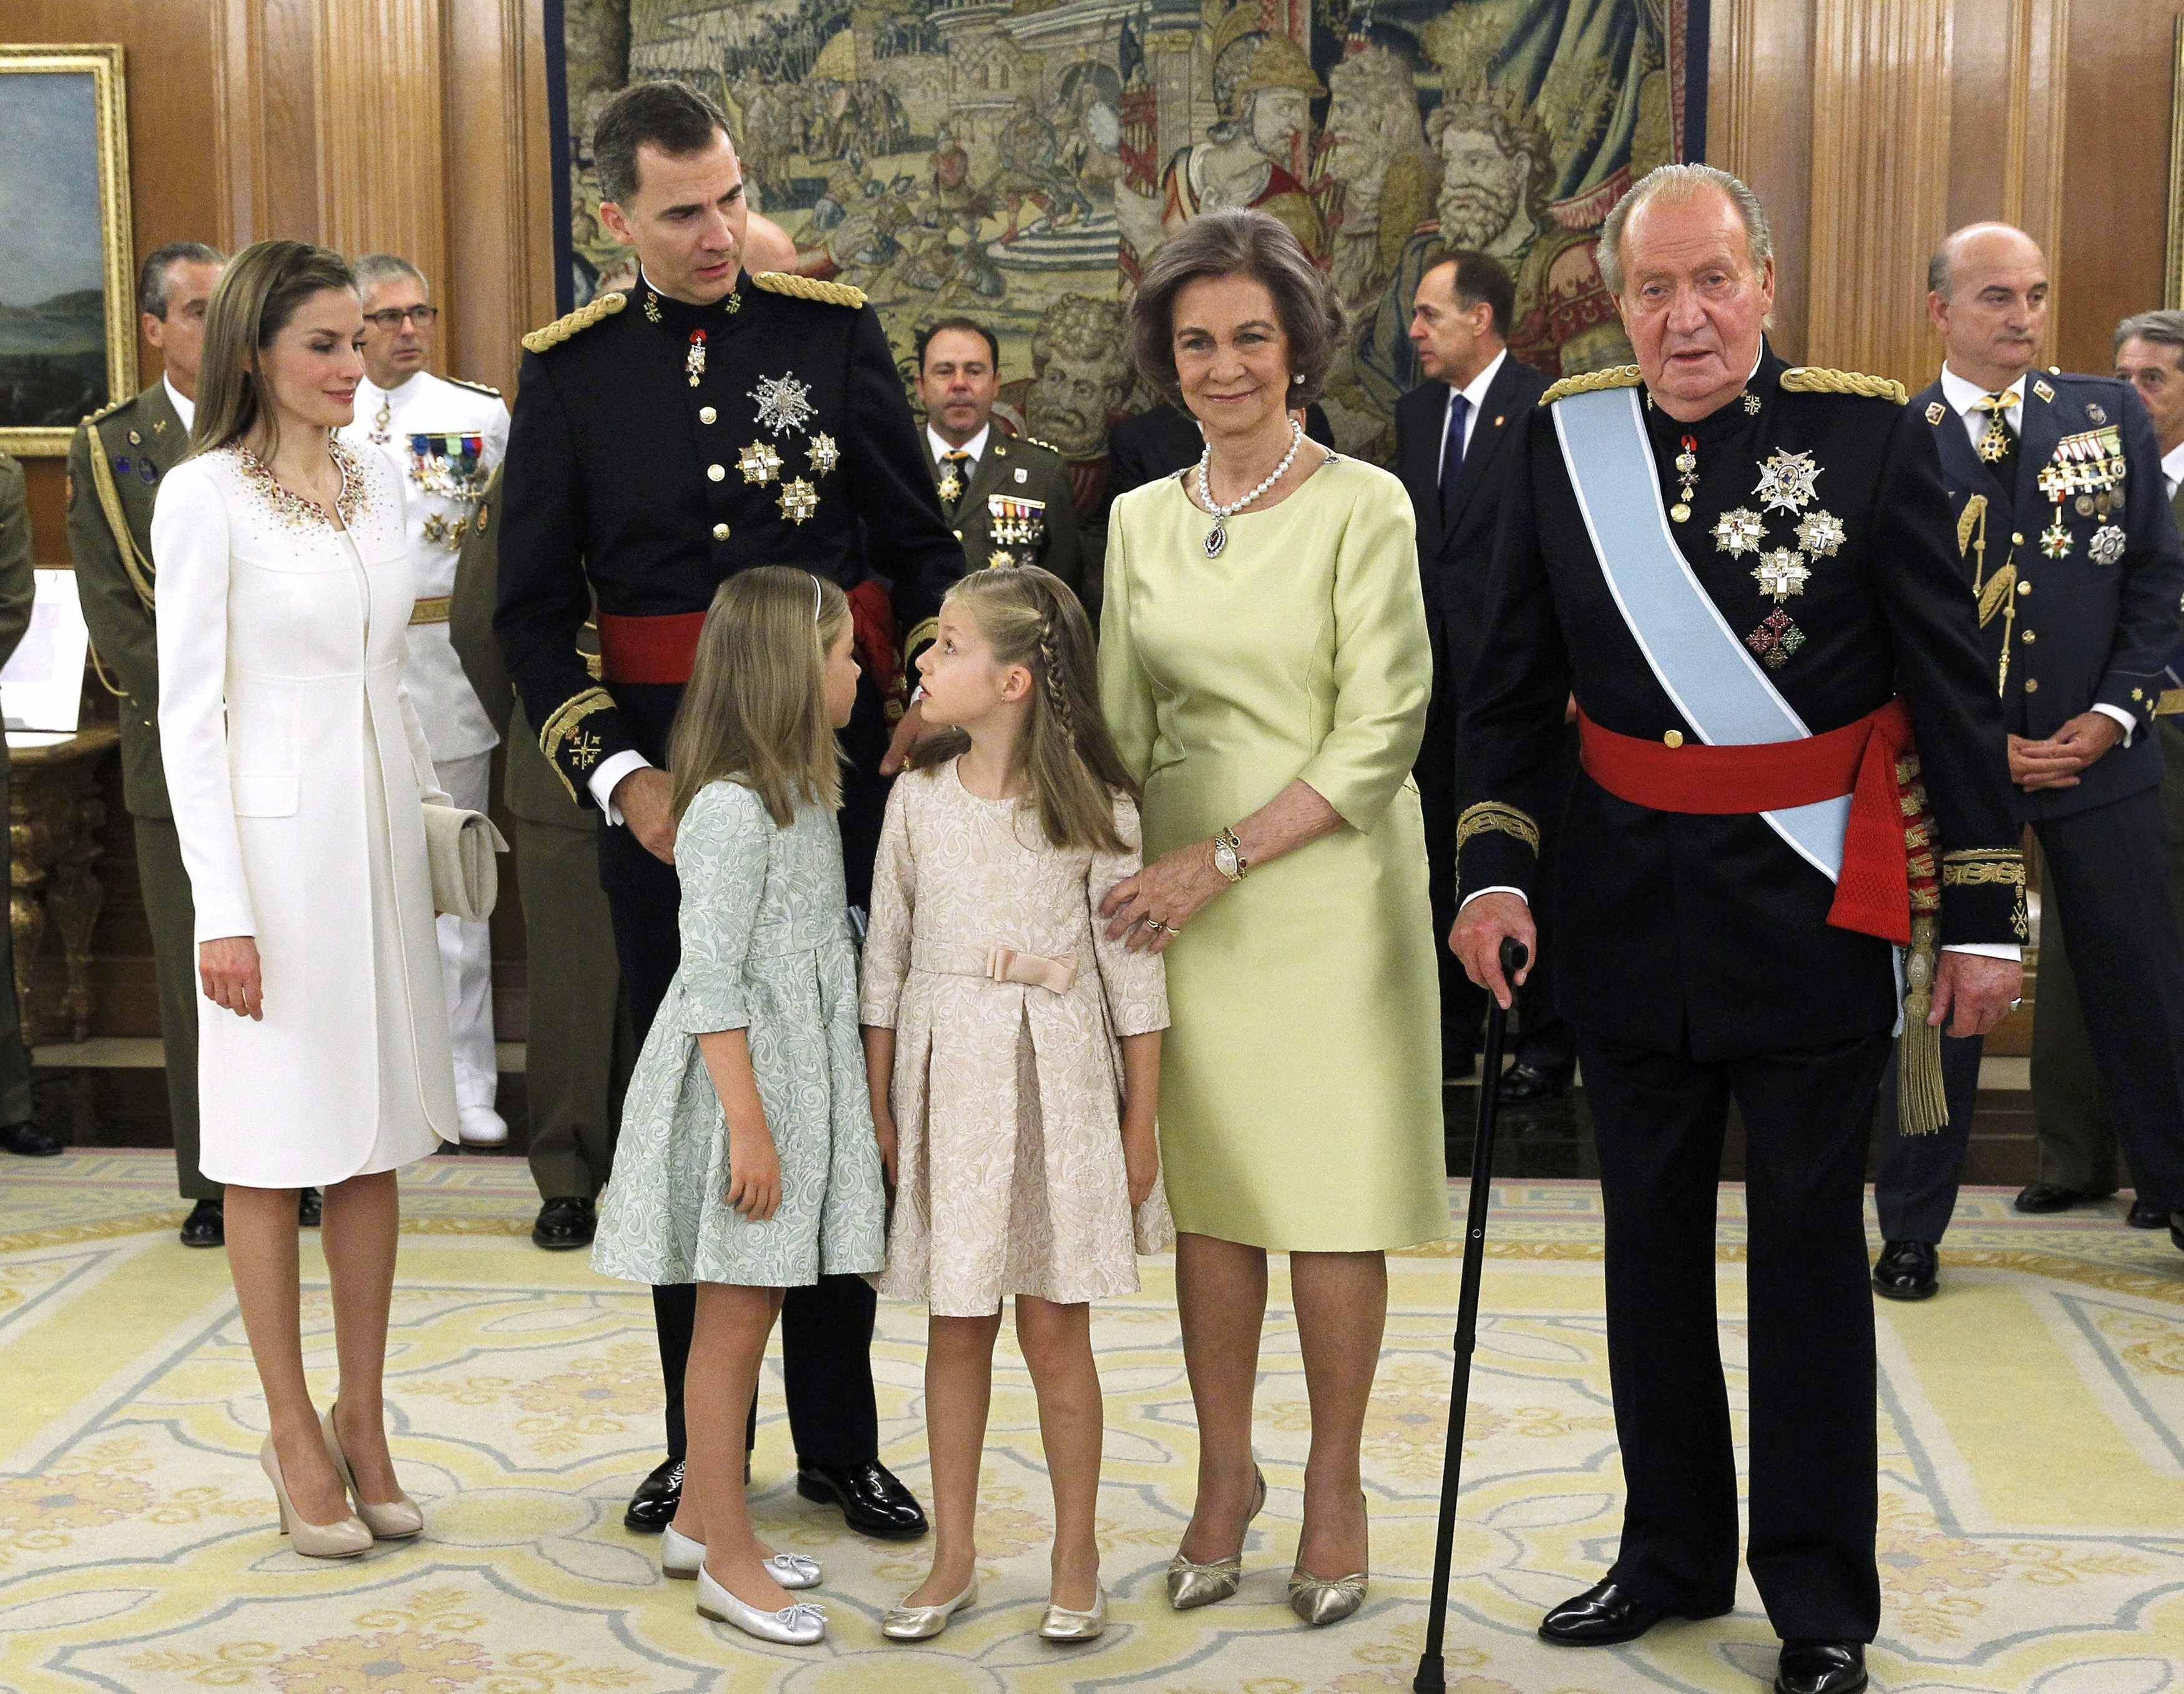 Spain S New King Felipe Vi With His Wife Queen Letizia And Their Daughters Princess Leonor And Queen Letizia Coronation Robes Crown Princess Victoria